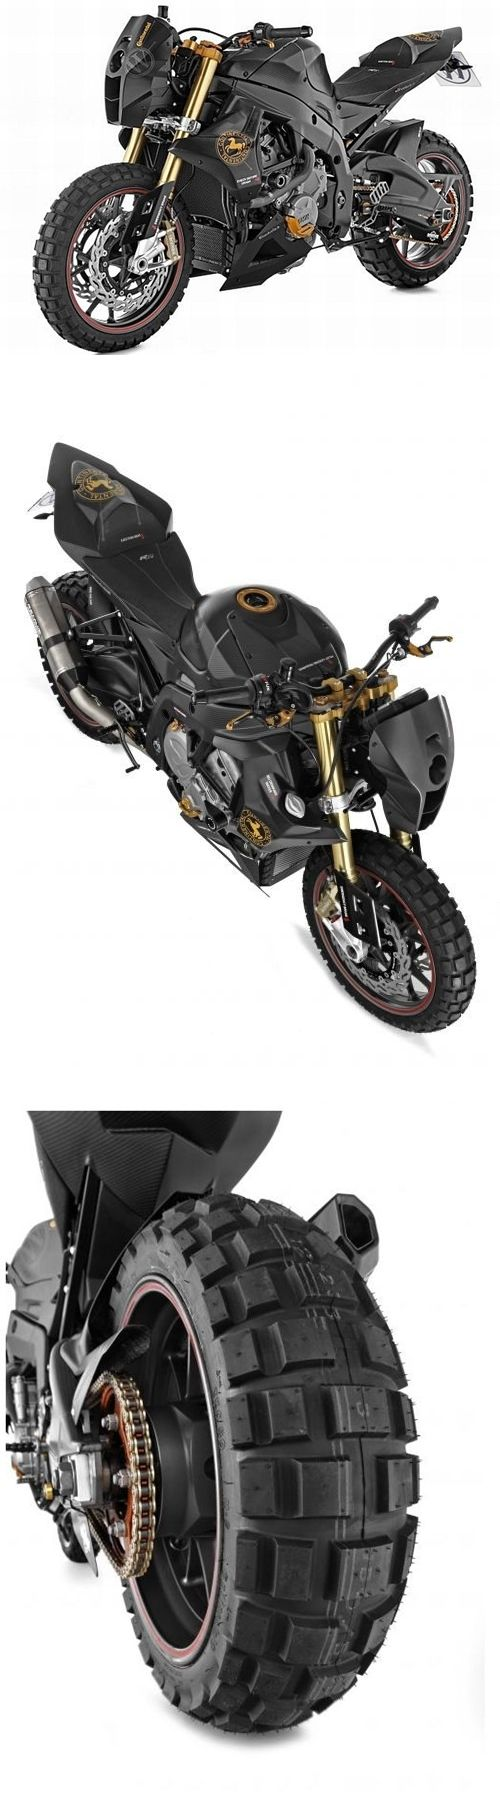 "BMW S 1000 RR ""Mad Max"" by Wunderlich"